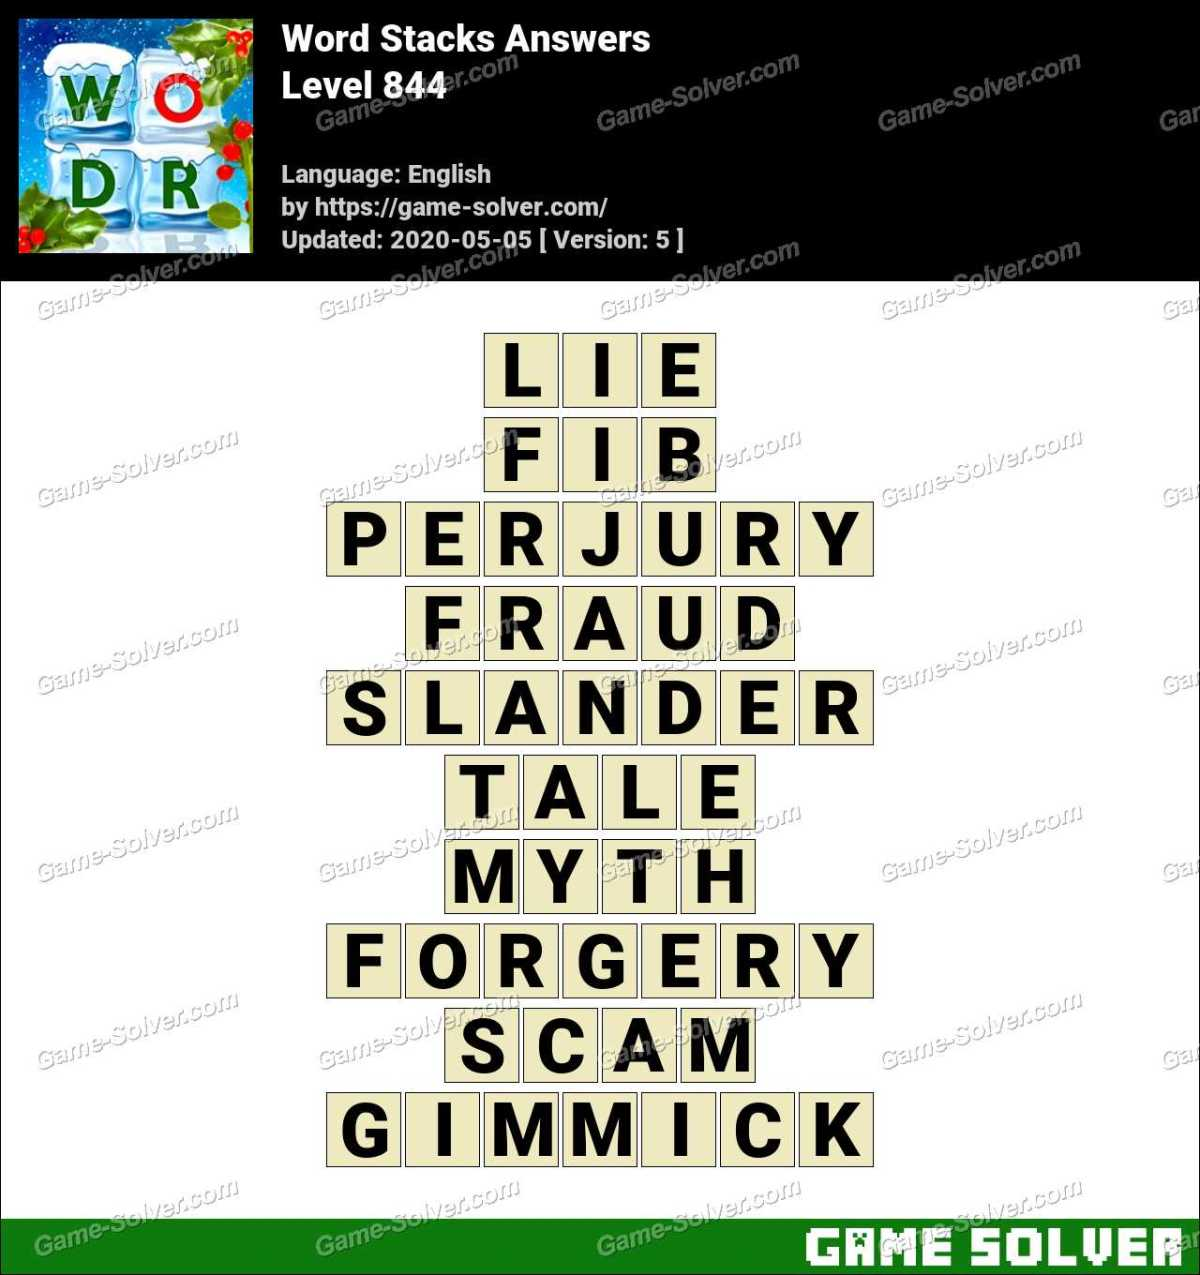 Word Stacks Level 844 Answers